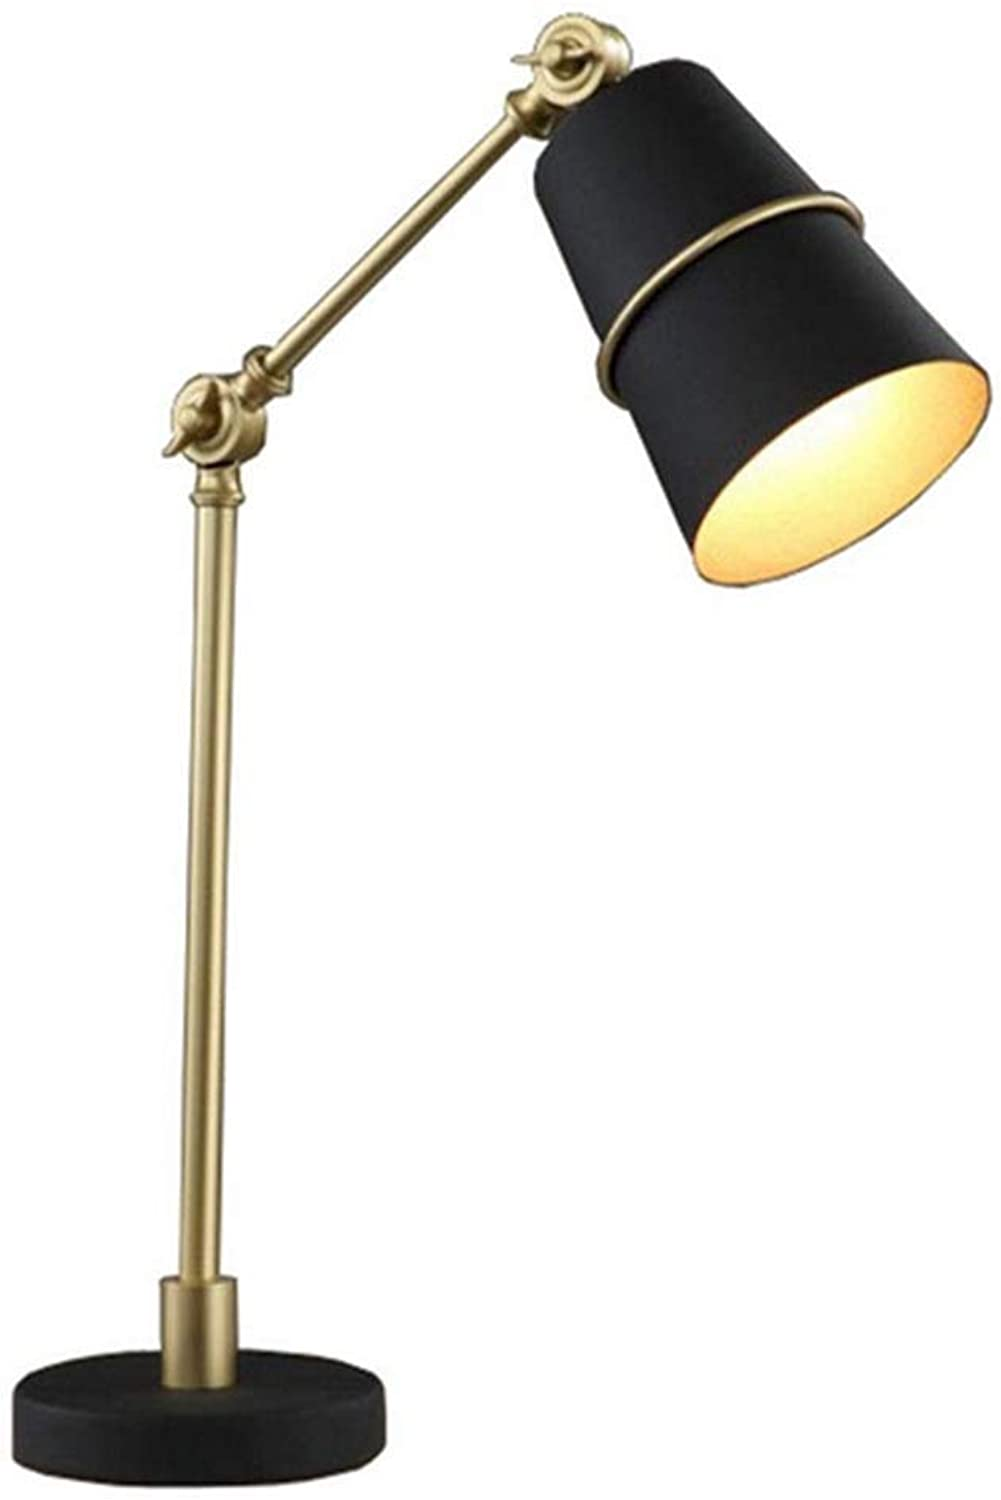 Lichtmodern Metal Table Lamp,Minimalist E27 Decor Table Light With Adjustable Arm For Bedside Bedroom